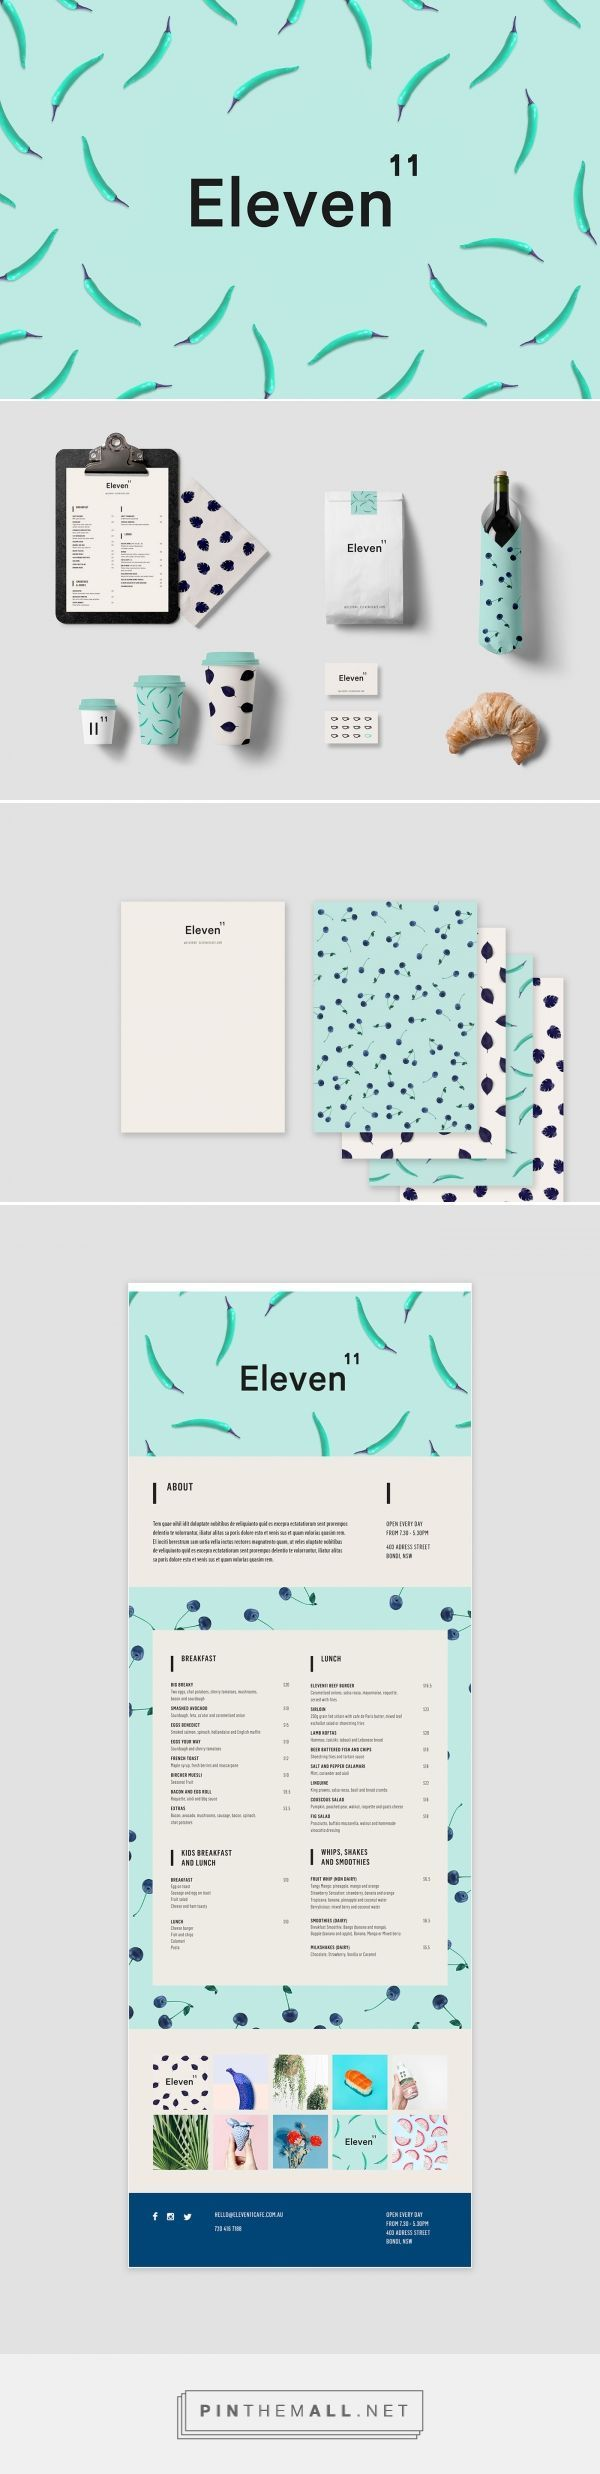 Eleven11 Branding by Soon Co.